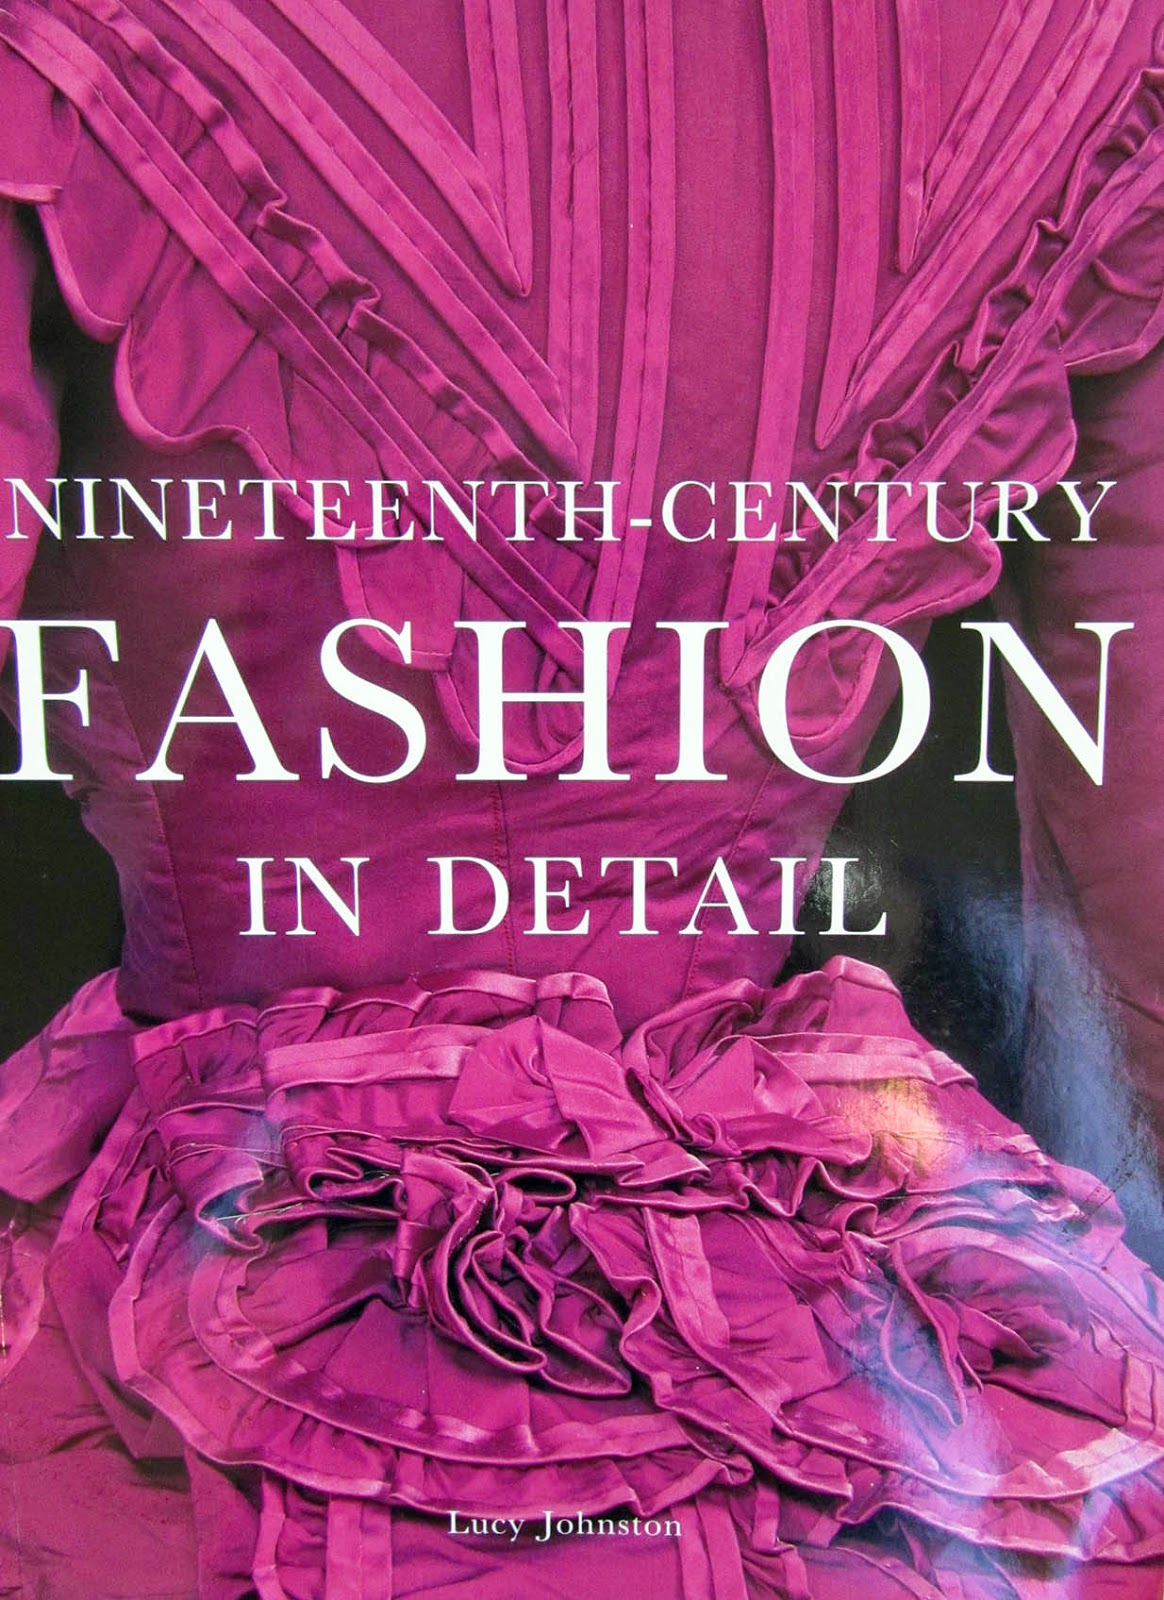 book: Fashion in detail